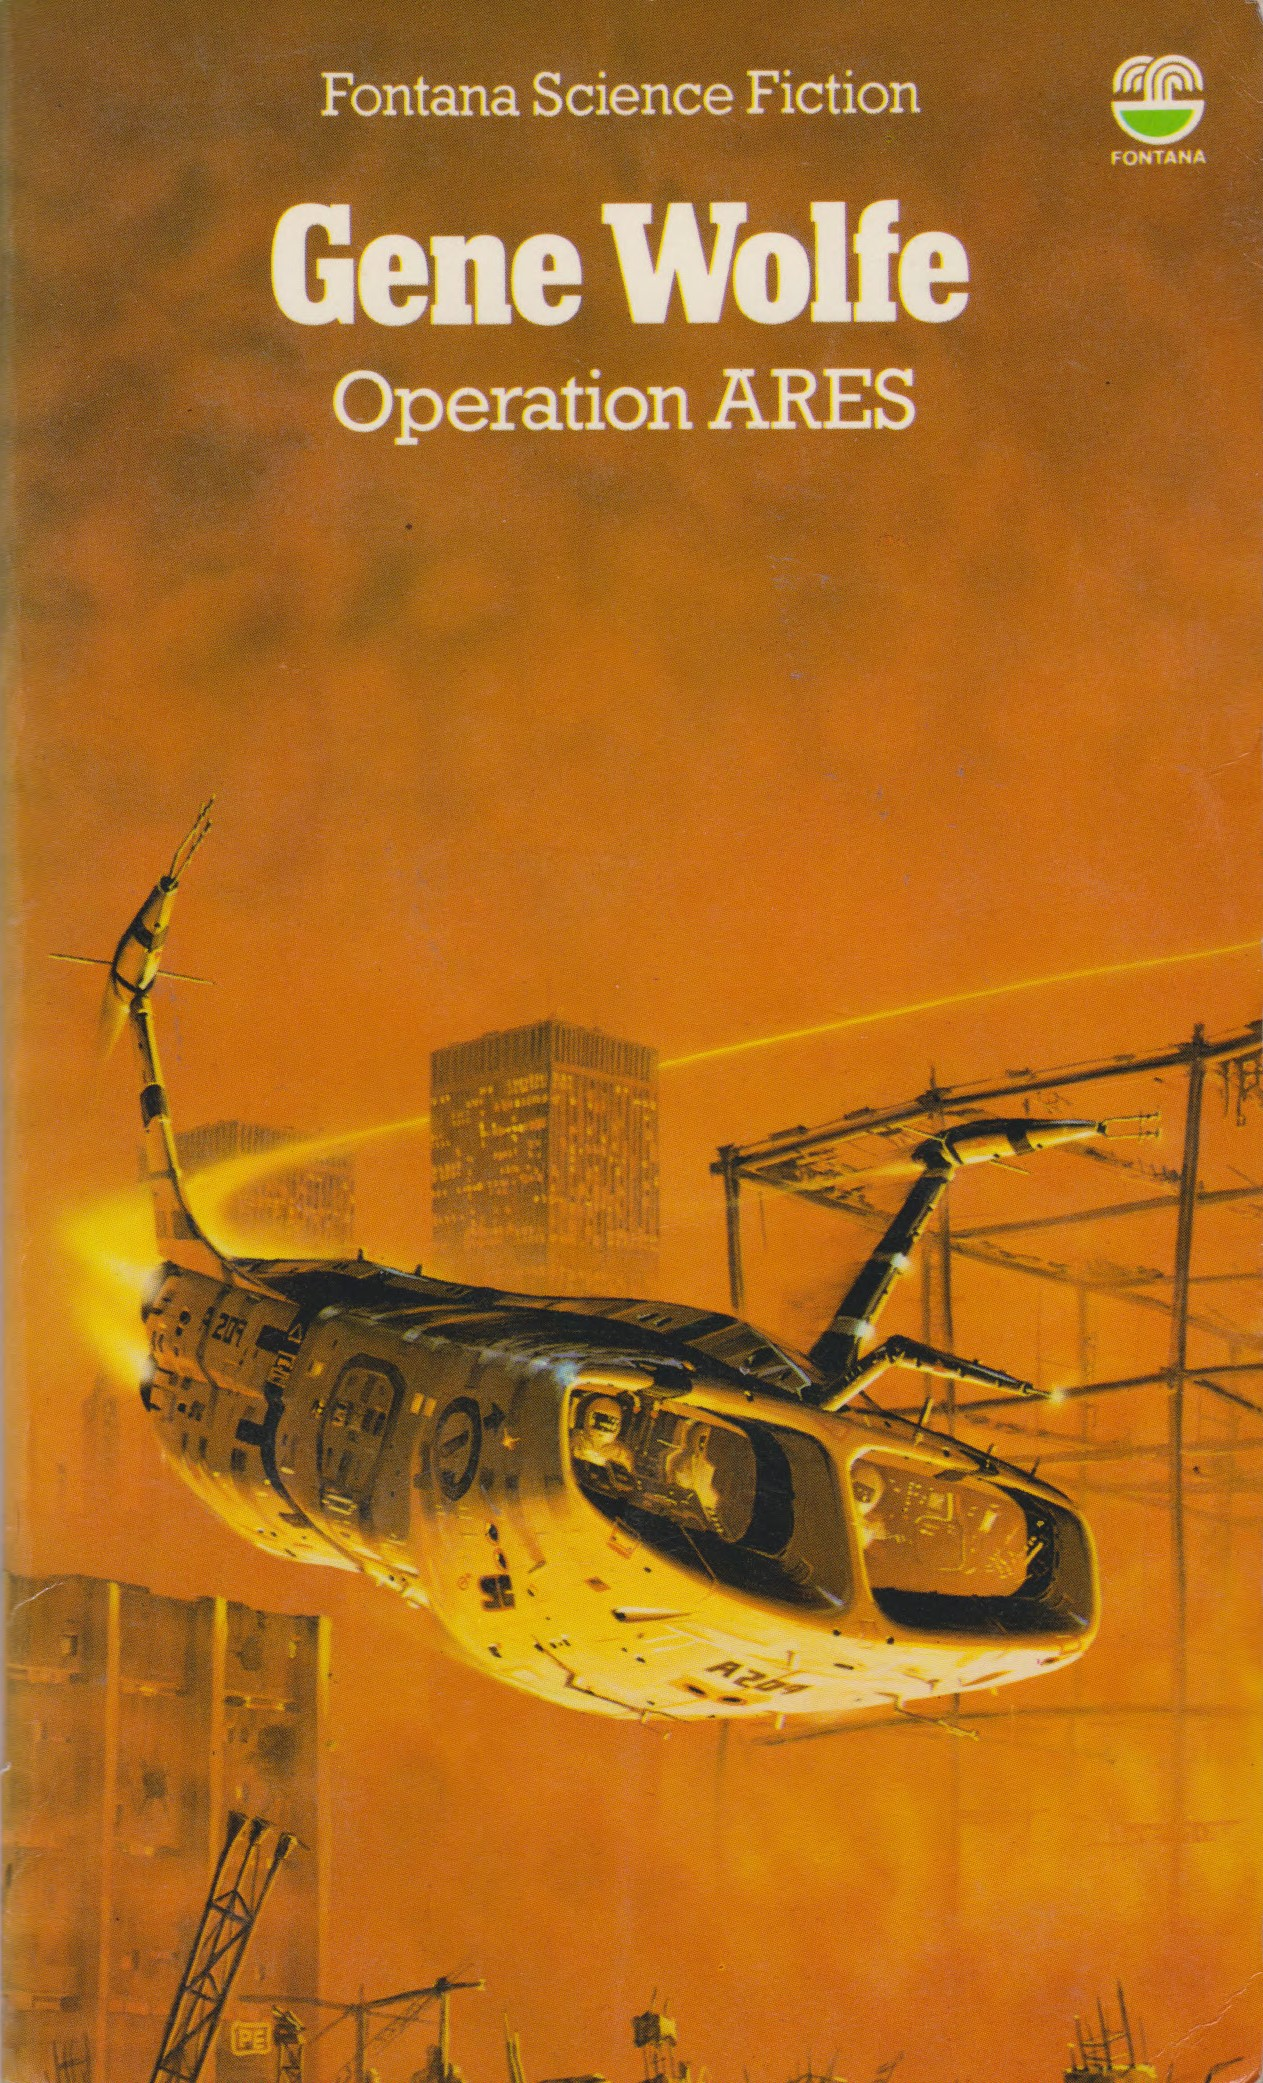 gene wolfe, operation ares